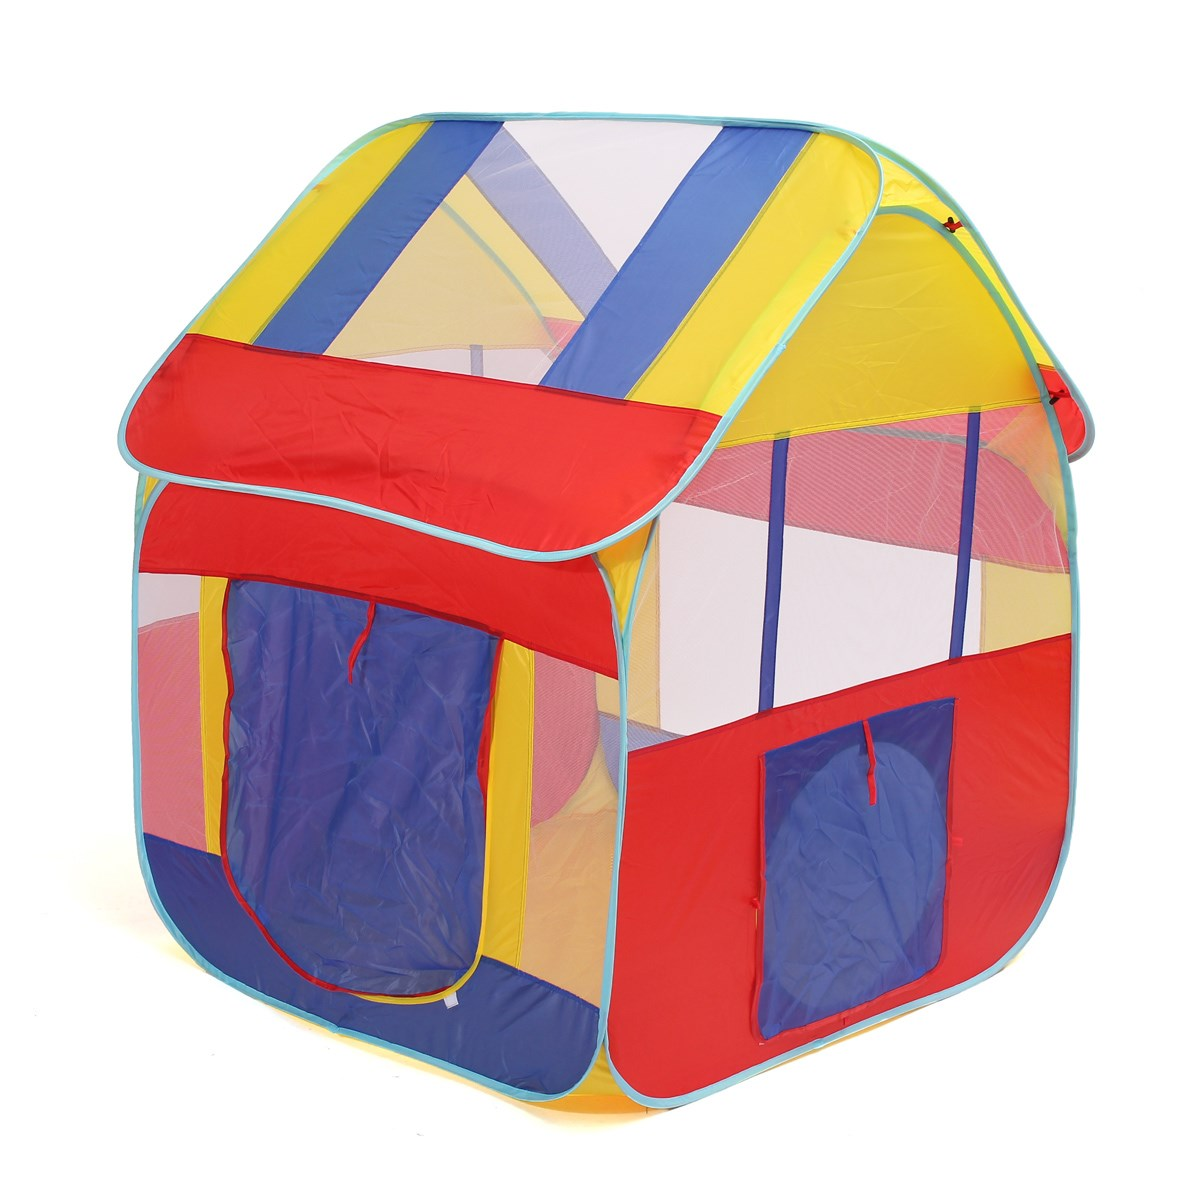 New Large Kids Play Tent Play Game House Indoor Outdoor Foldable C&ing Toy Tent For Children Baby Beach Tent Without Balls-in Toy Tents from Toys ...  sc 1 st  AliExpress.com & New Large Kids Play Tent Play Game House Indoor Outdoor Foldable ...